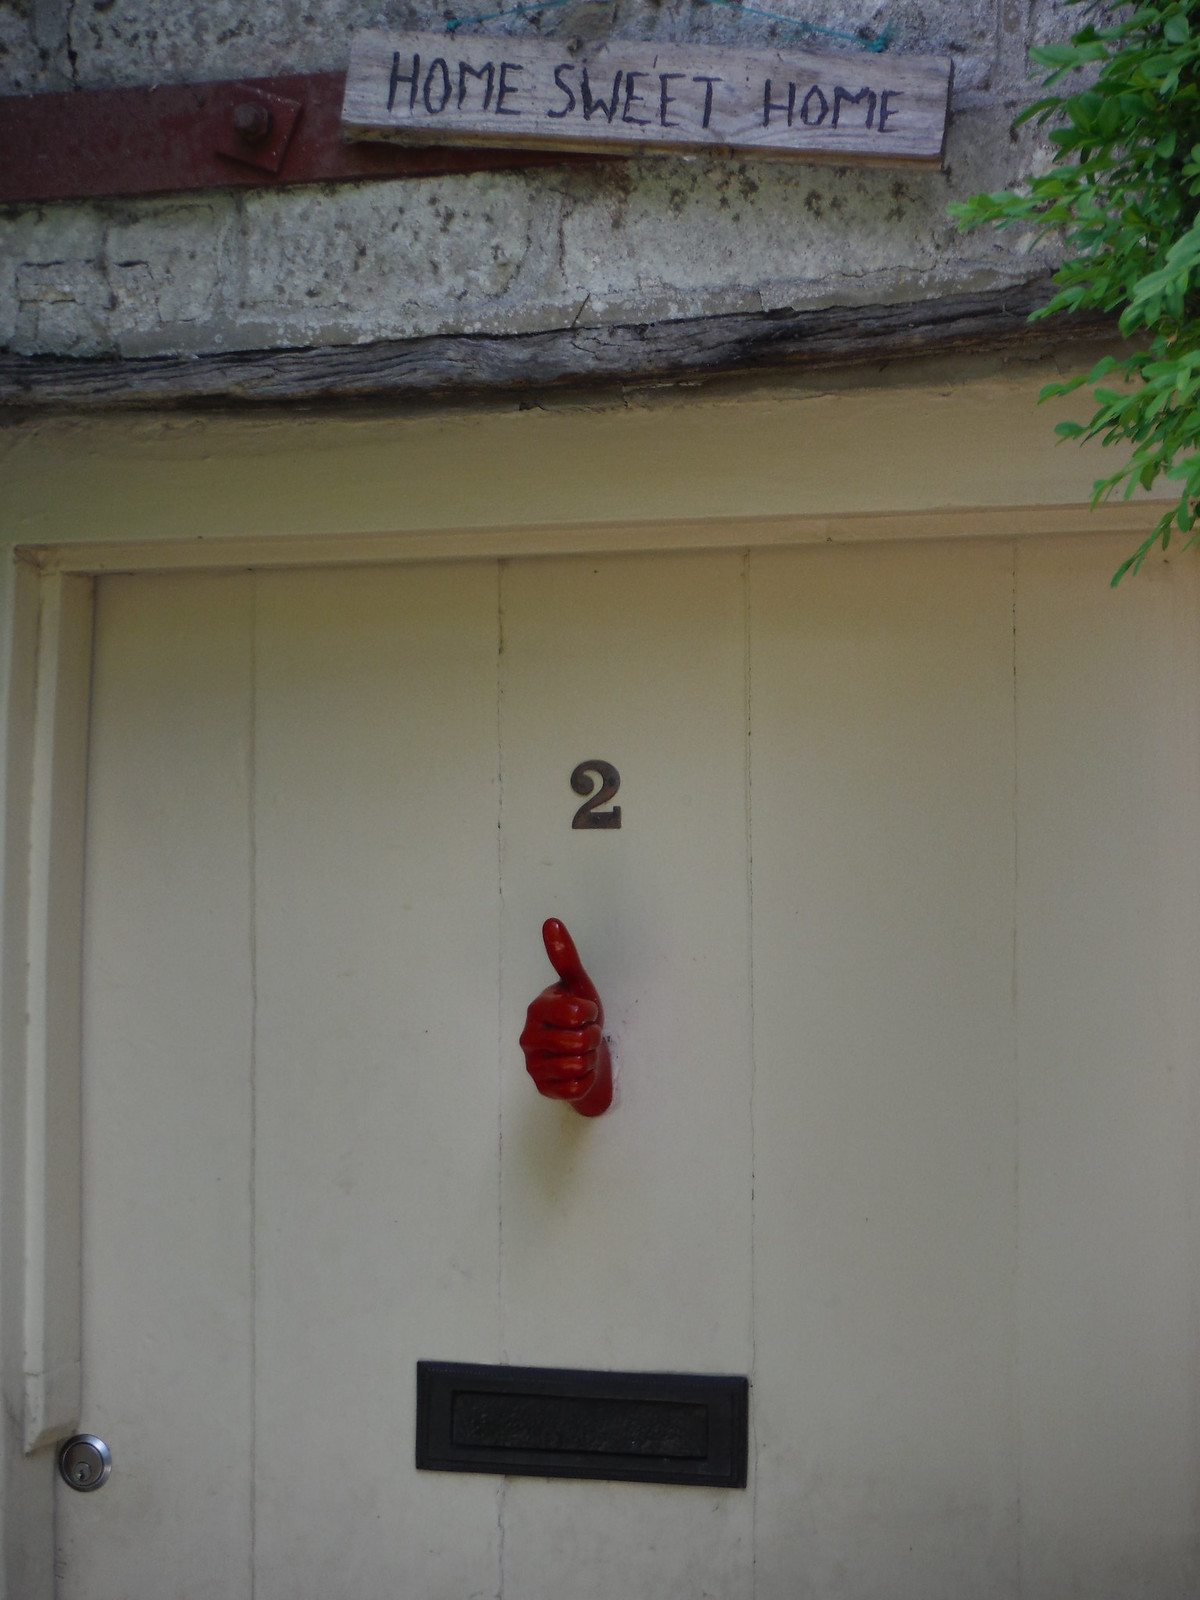 Doorknocker in Portash SWC Walk 249 Tisbury Circular via Dinton and Fovant